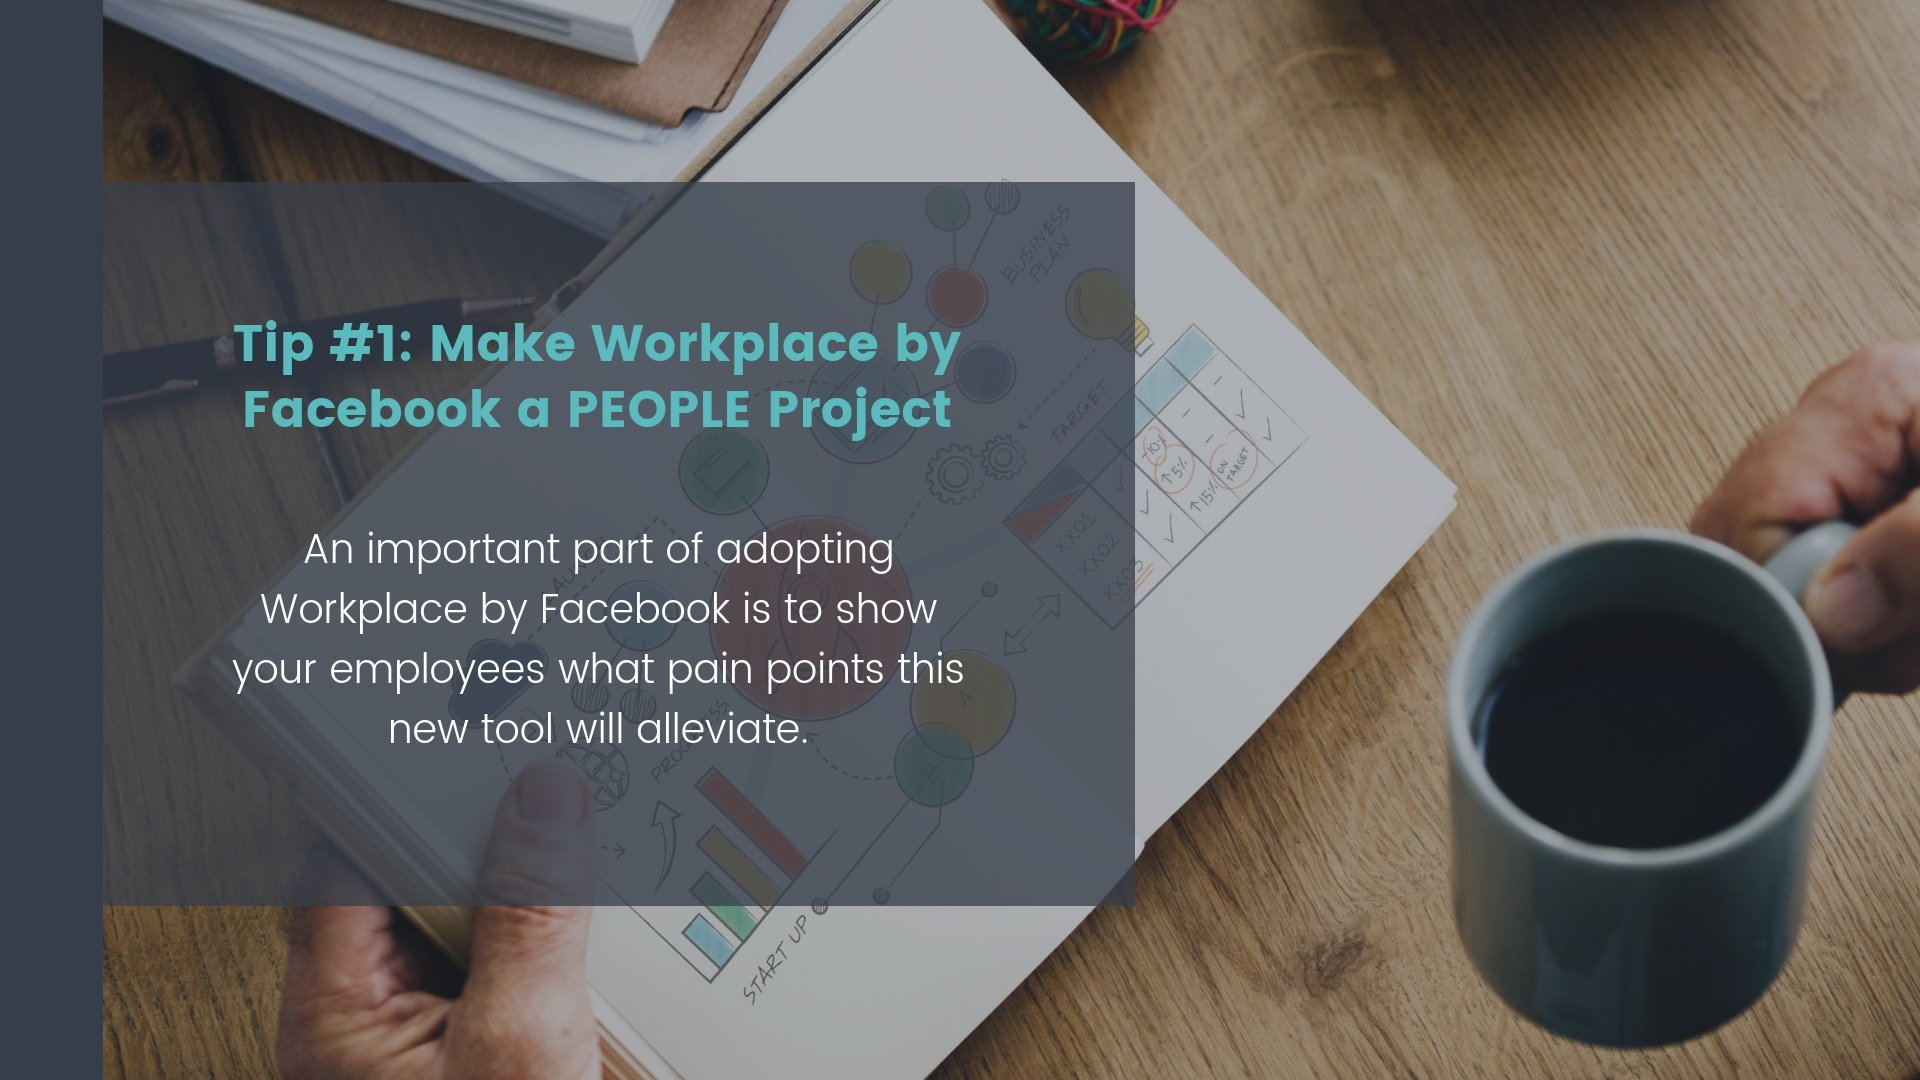 Tip #1: Make Workplace by Facebook a PEOPLE Project